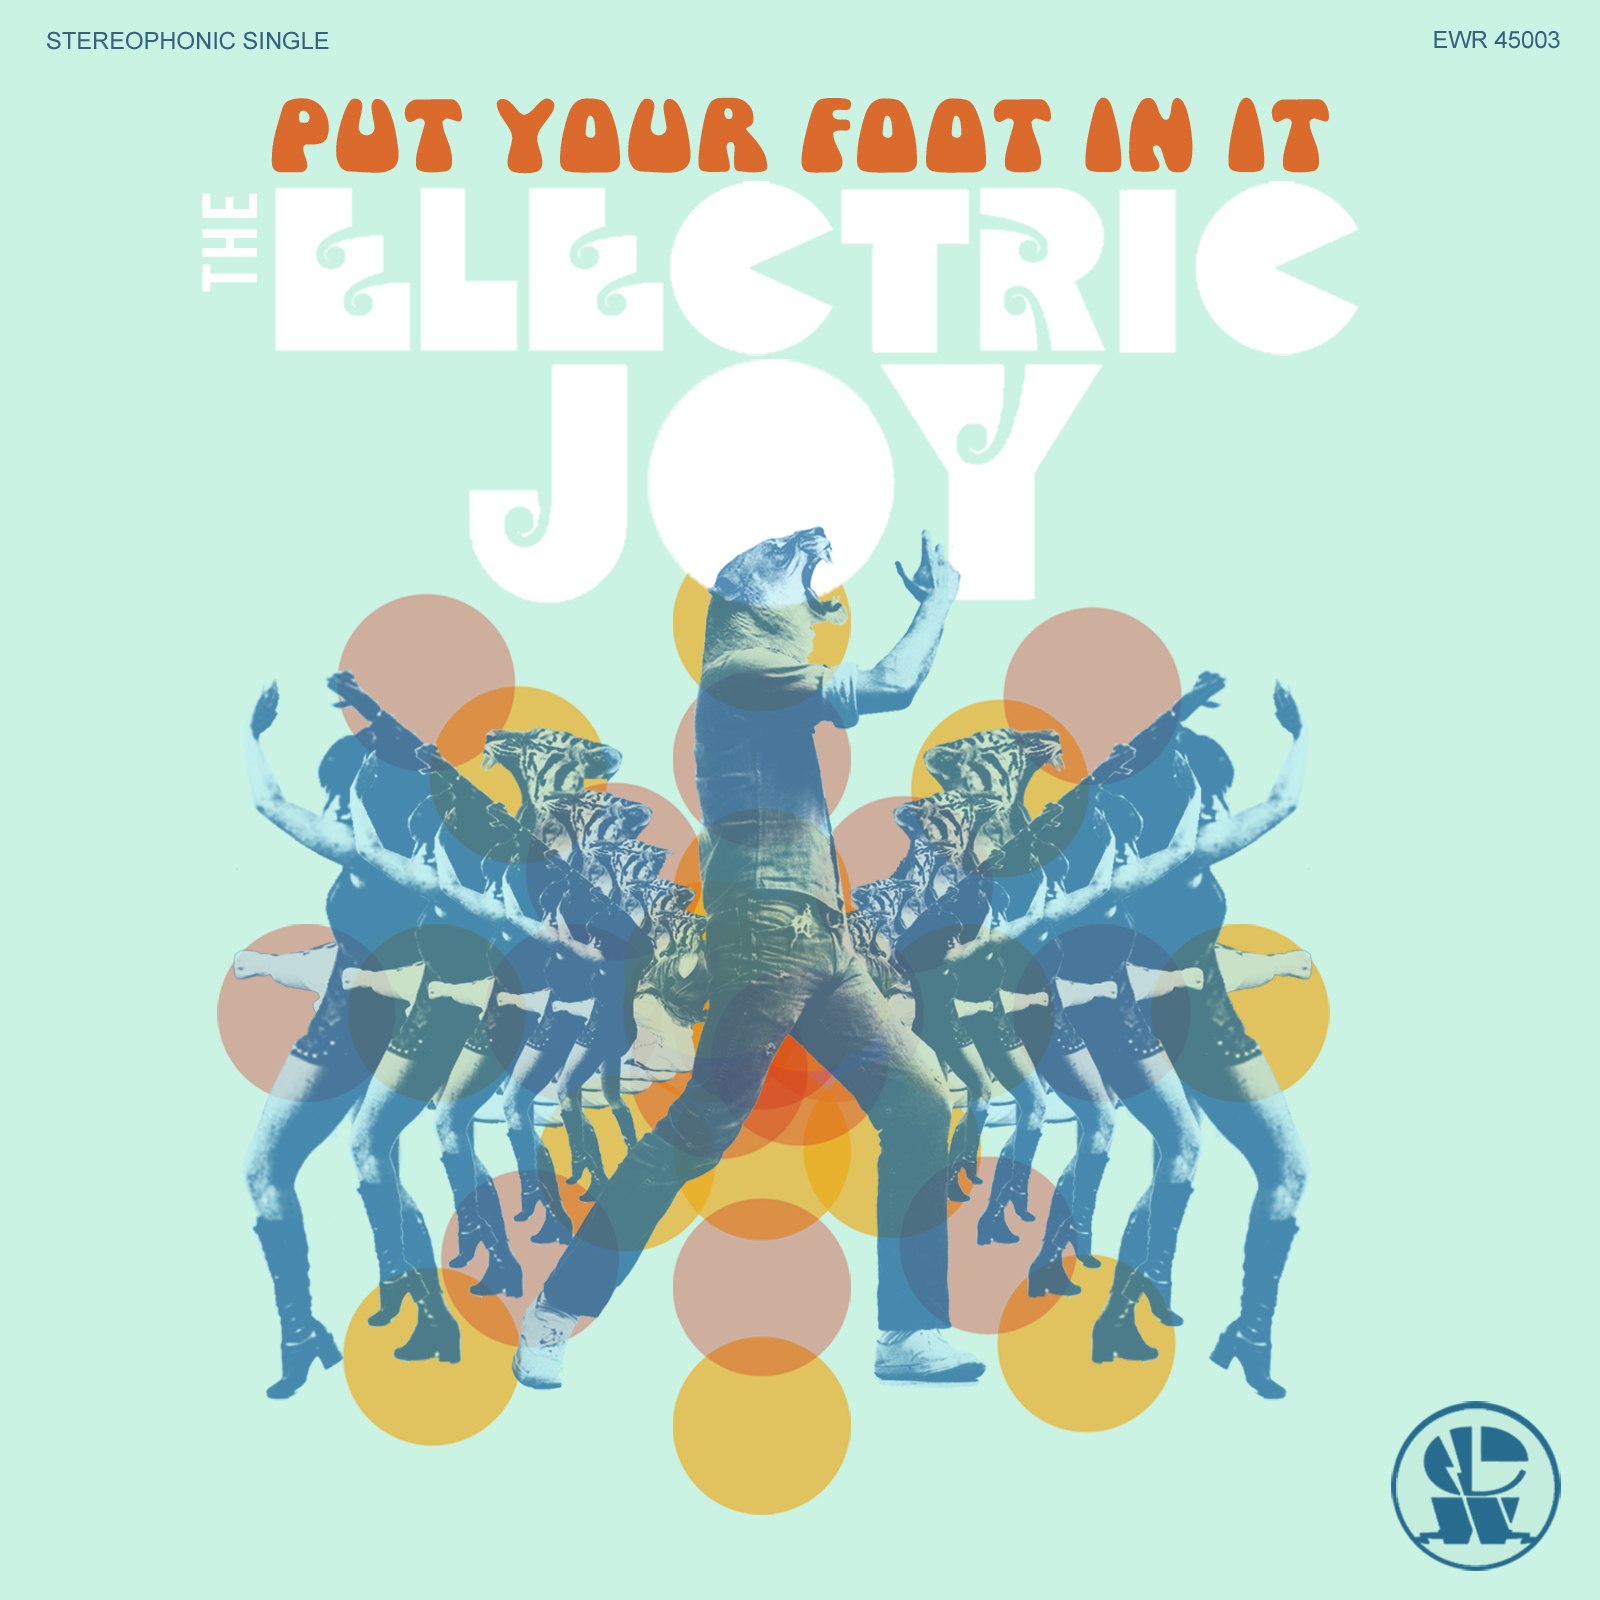 """""""Put Your Foot In It"""" - The Electric Joy"""